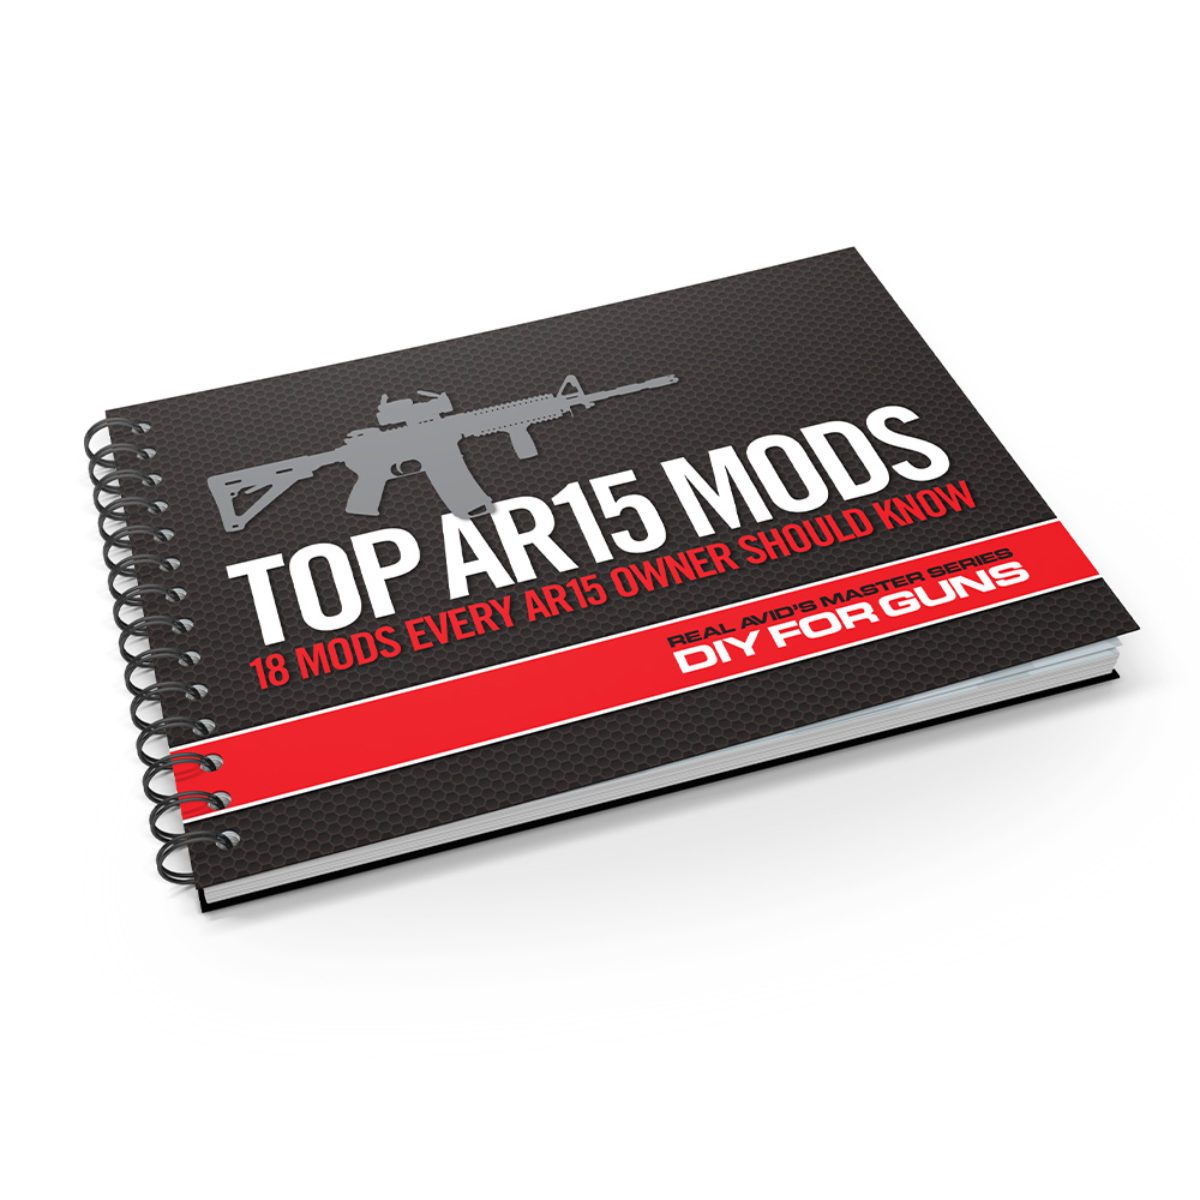 Book of Top AR15 MODS from Real Avid